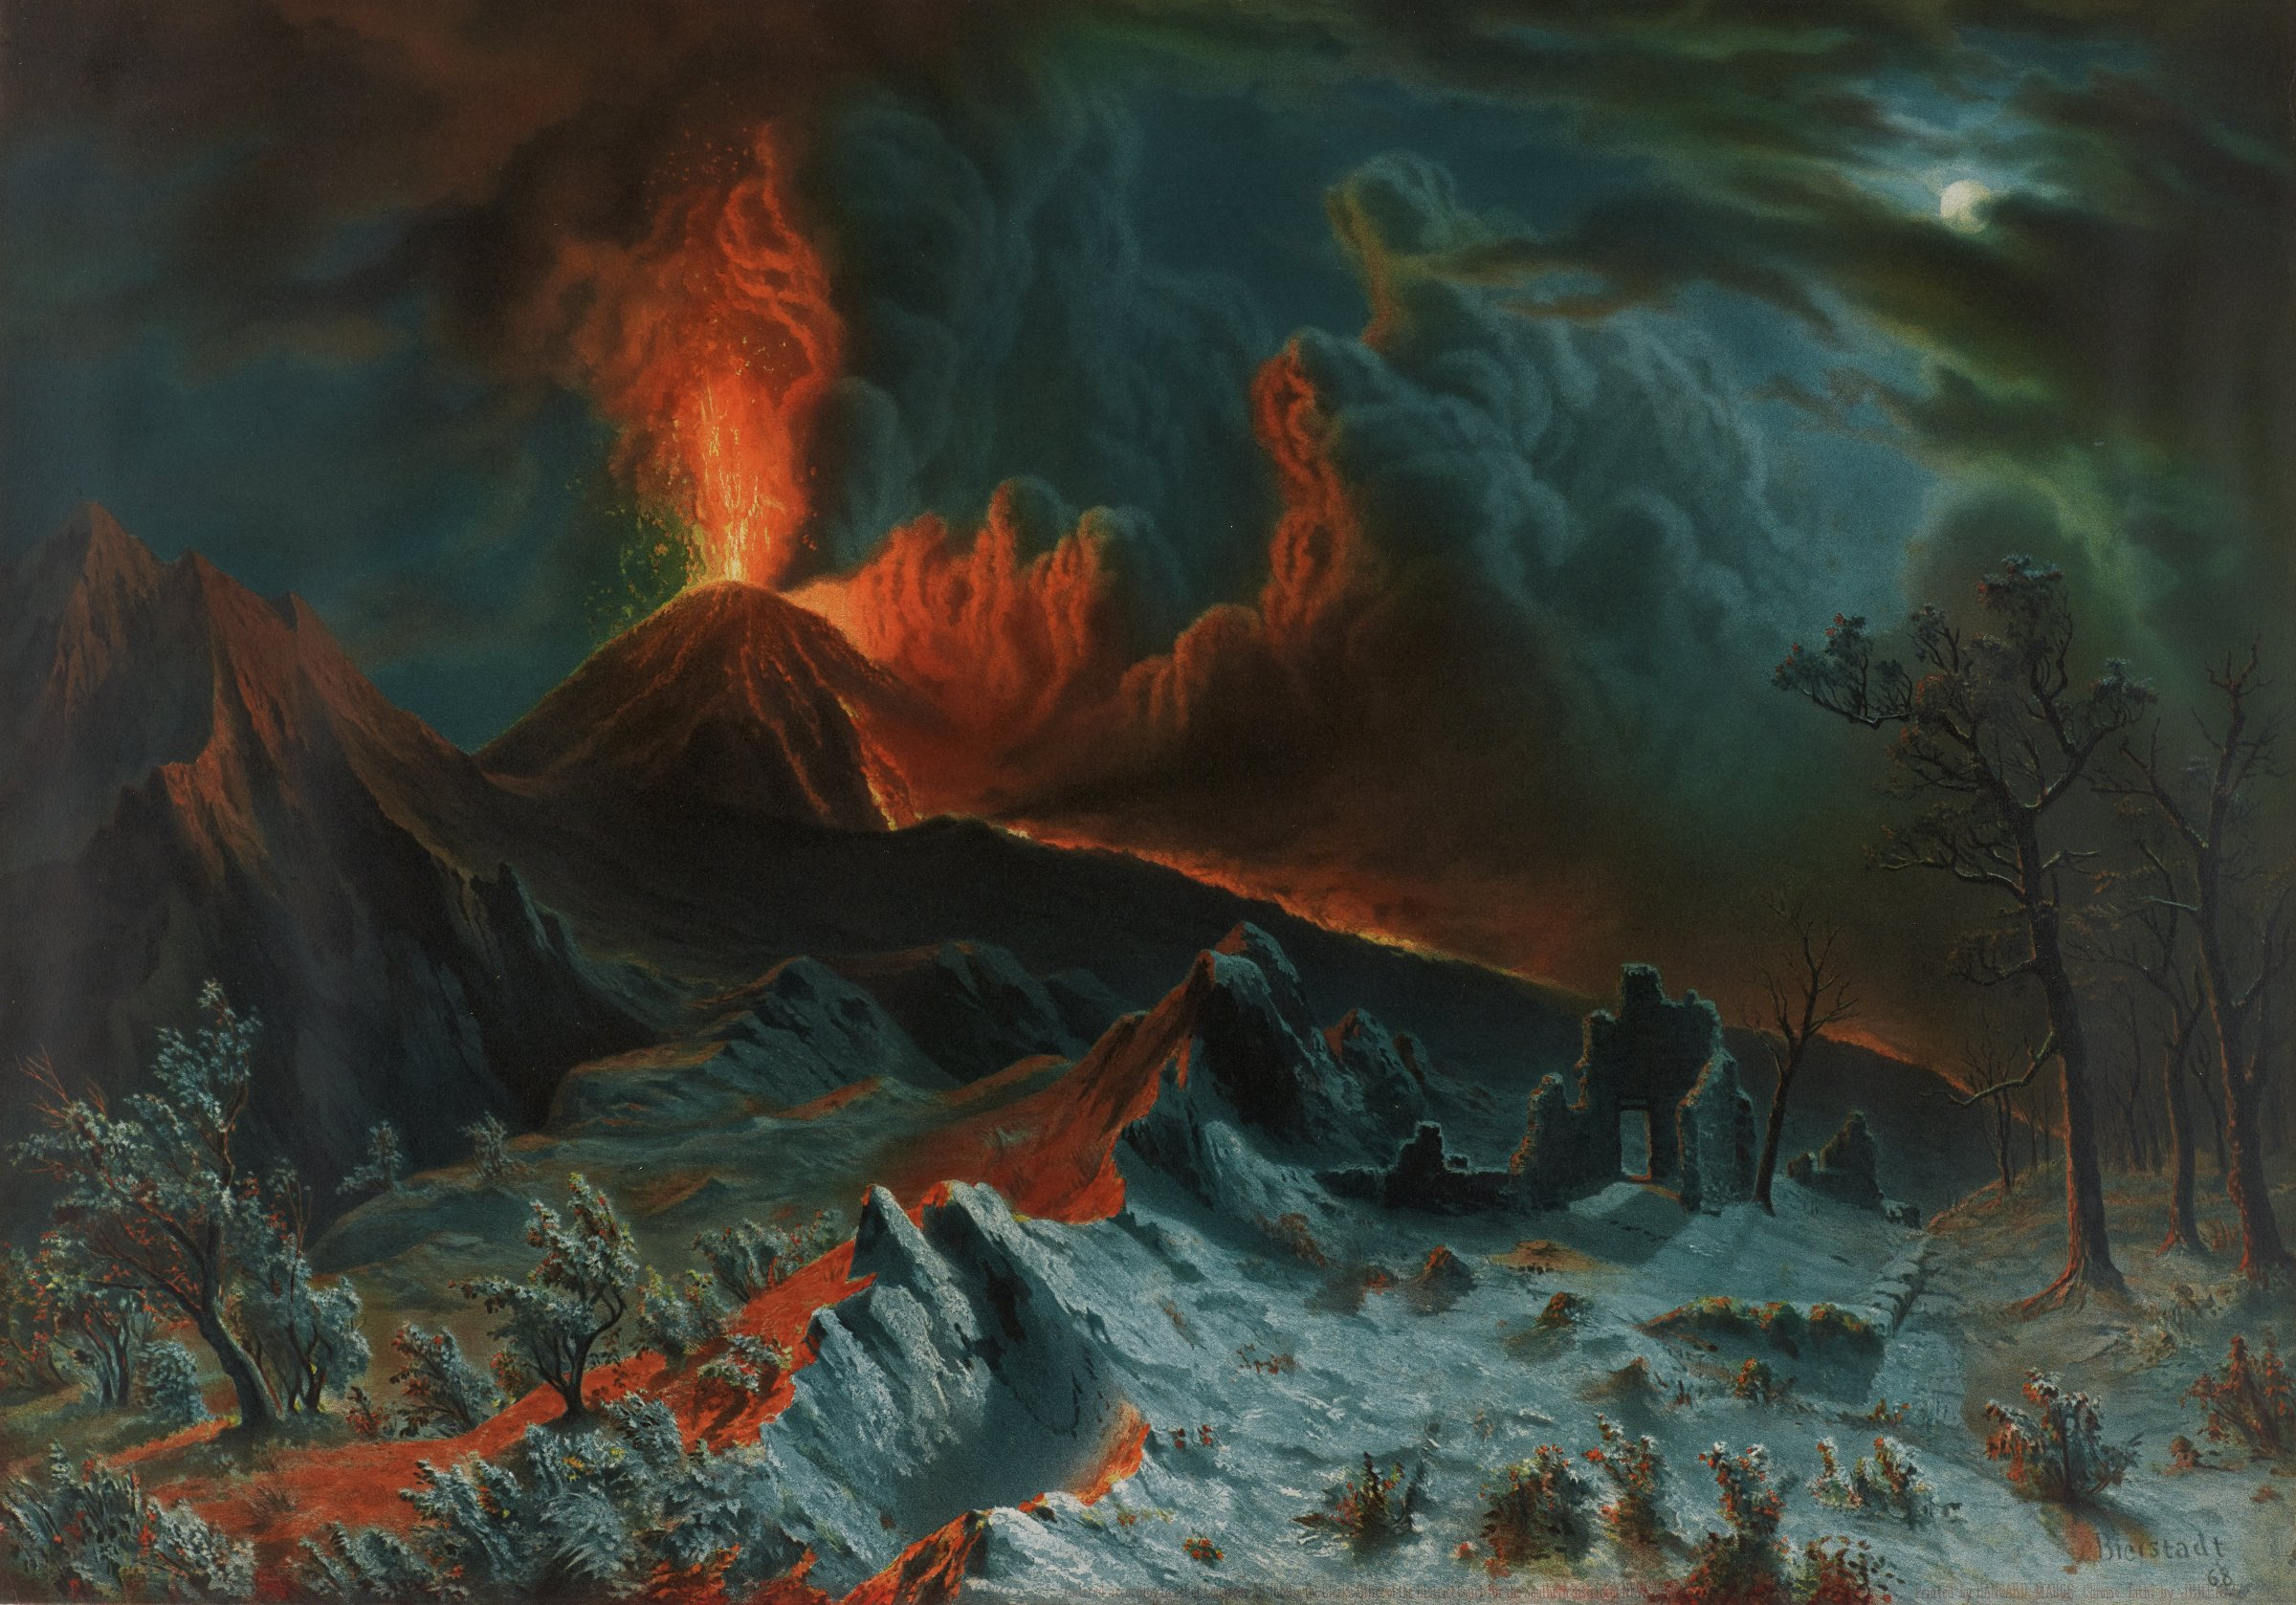 Mount Vesuvius at Midnight, J. Jehenne , lithographer, Etienne Isidore Hangard-Maugé , printer, After the original painting by Albert Bierstadt, chromolithograph